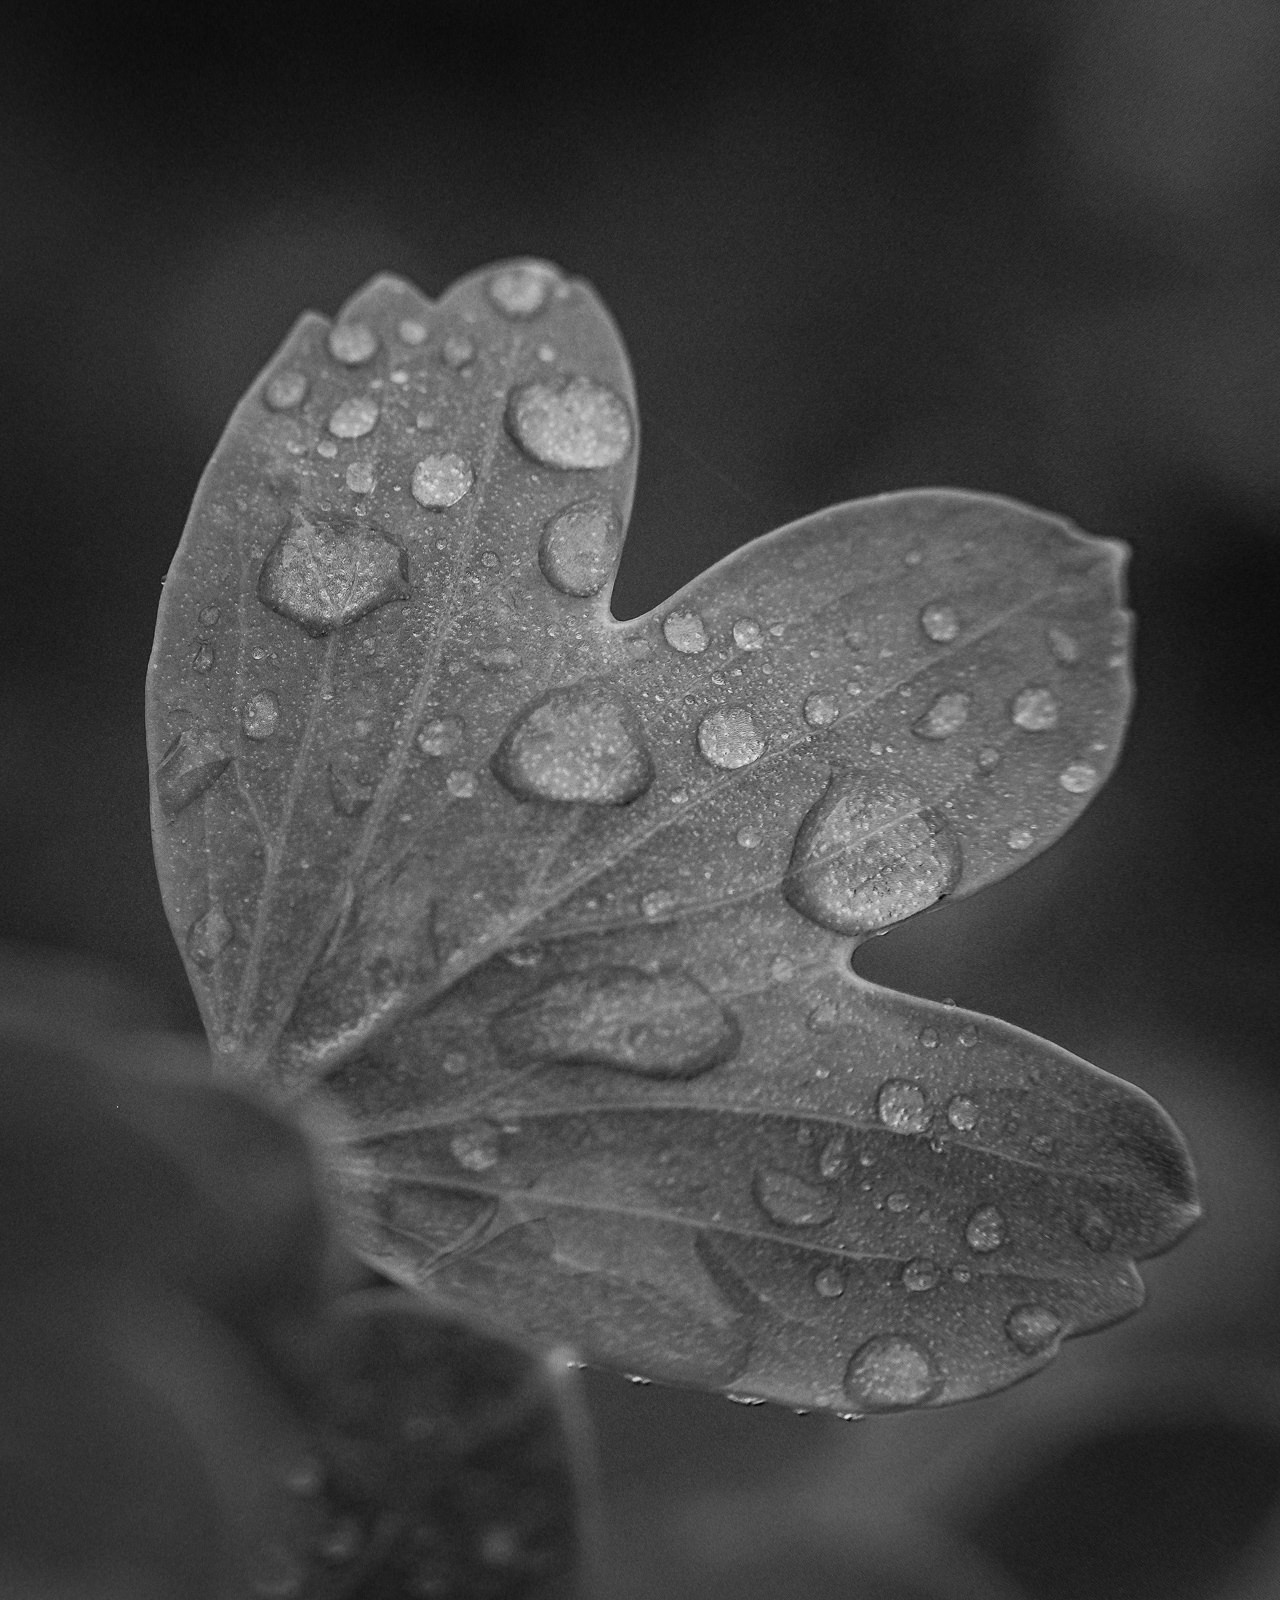 Day 129- 365 Day B&W Photo Challenge - The May Flowers are starting to bloom, but it appears May Showers are in order here in Colorado. Those rain drops make for beautiful images. - Fuji X-T3, MCEX-11 Extension Tube, XF 35mm f/2, Acros R Film Simulation